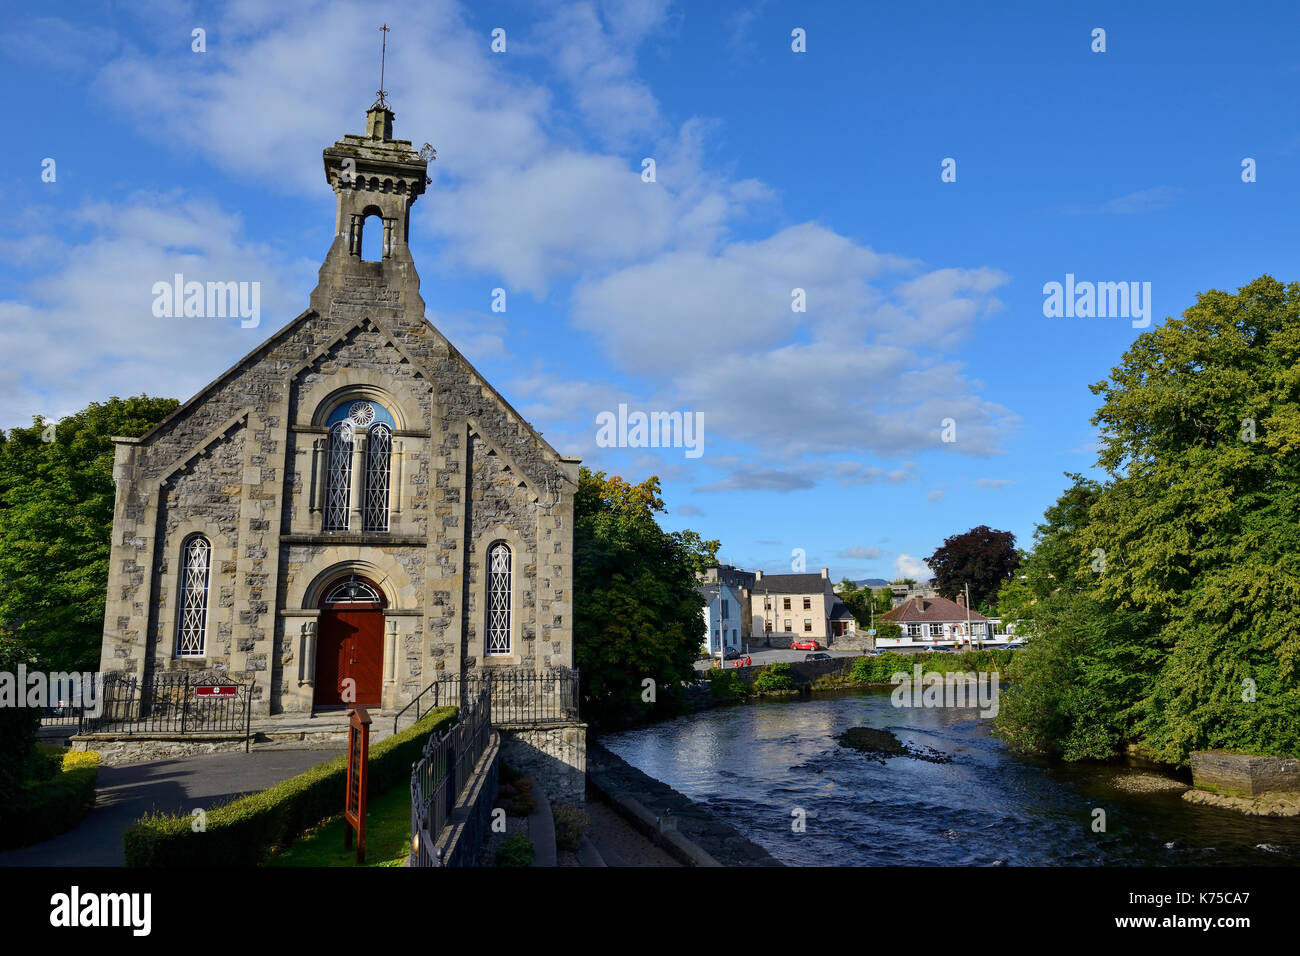 Donegal Methodist Church in Donegal Town, County Donegal, Republic of Ireland - Stock Image